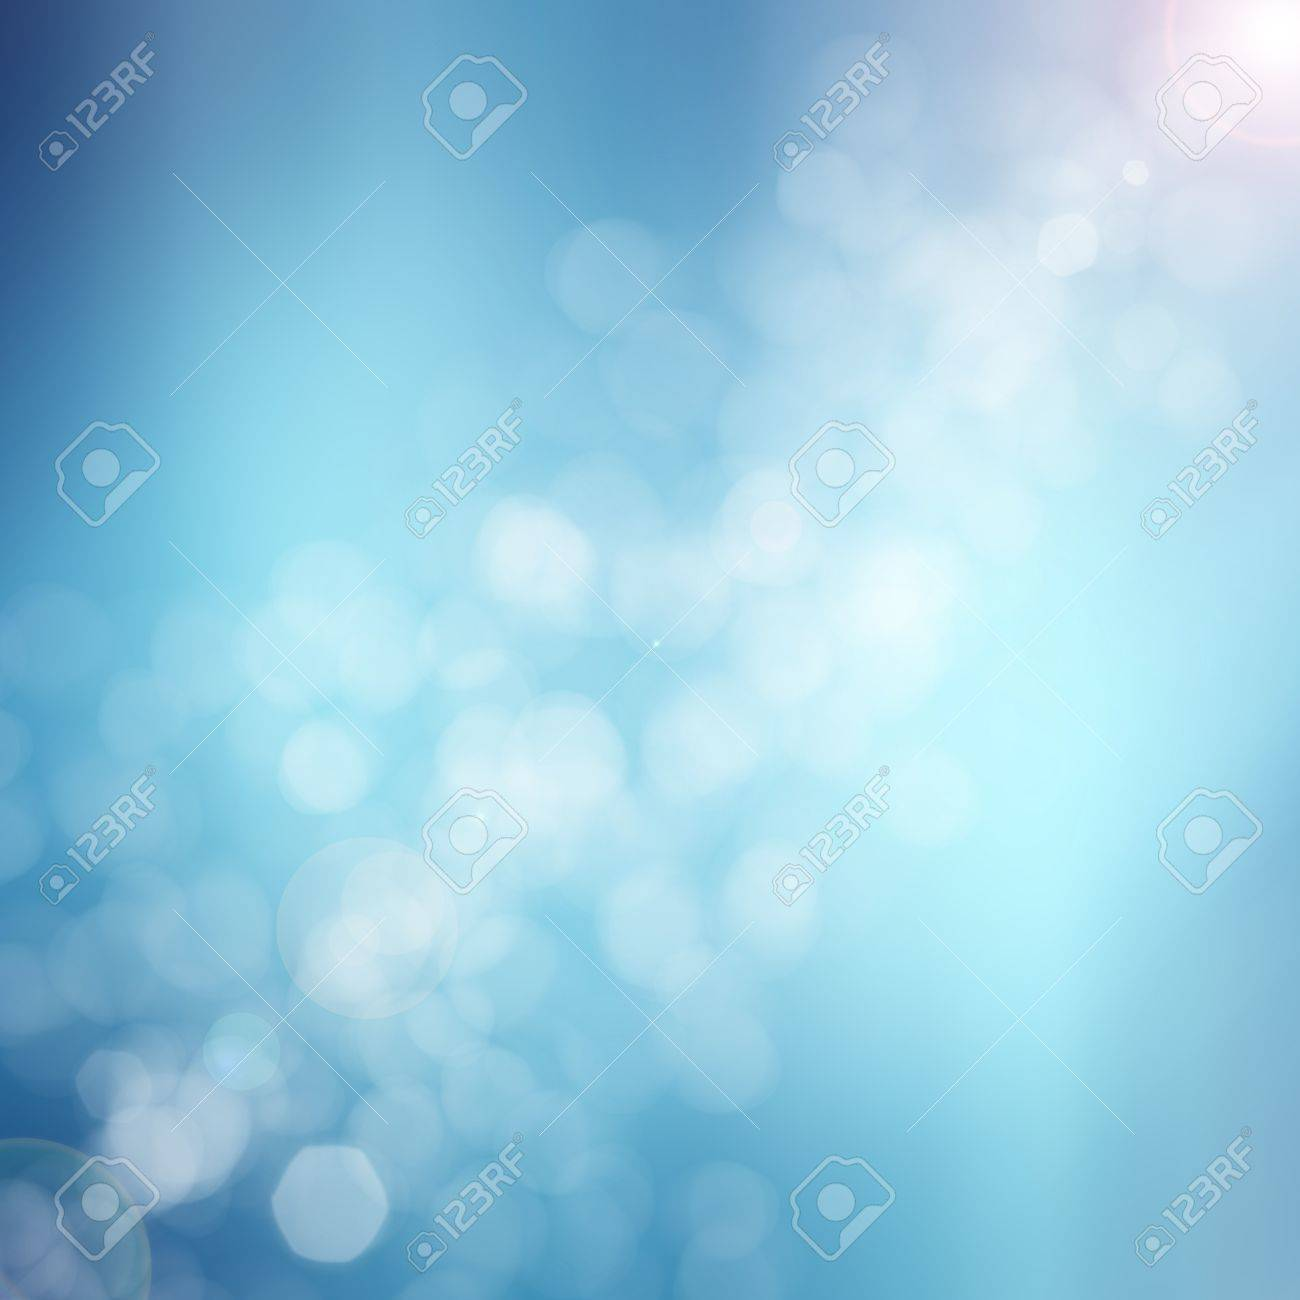 blue abstract light background Stock Photo - 19684896